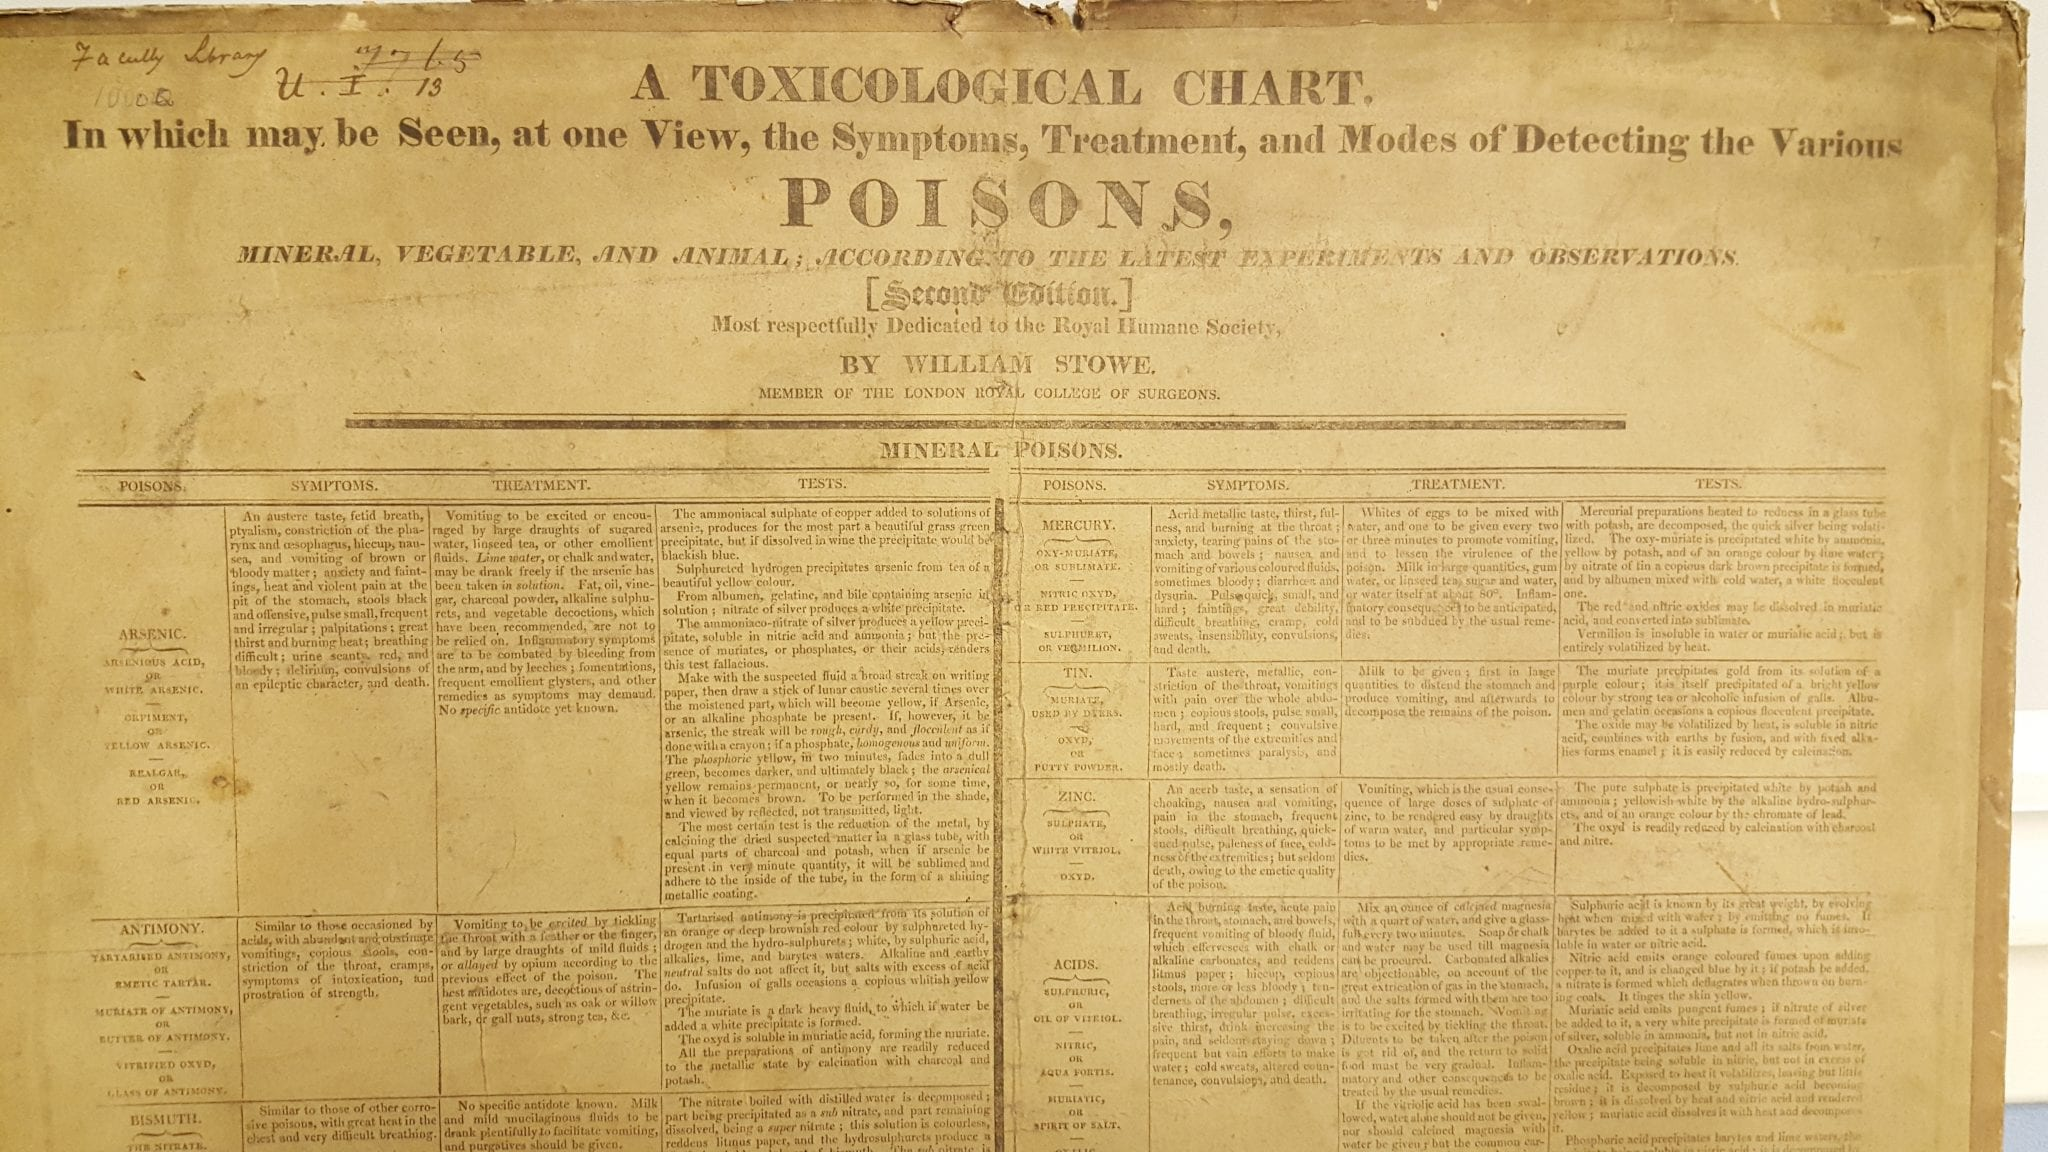 A Toxicological Chart by William Stowe (2nd edition)